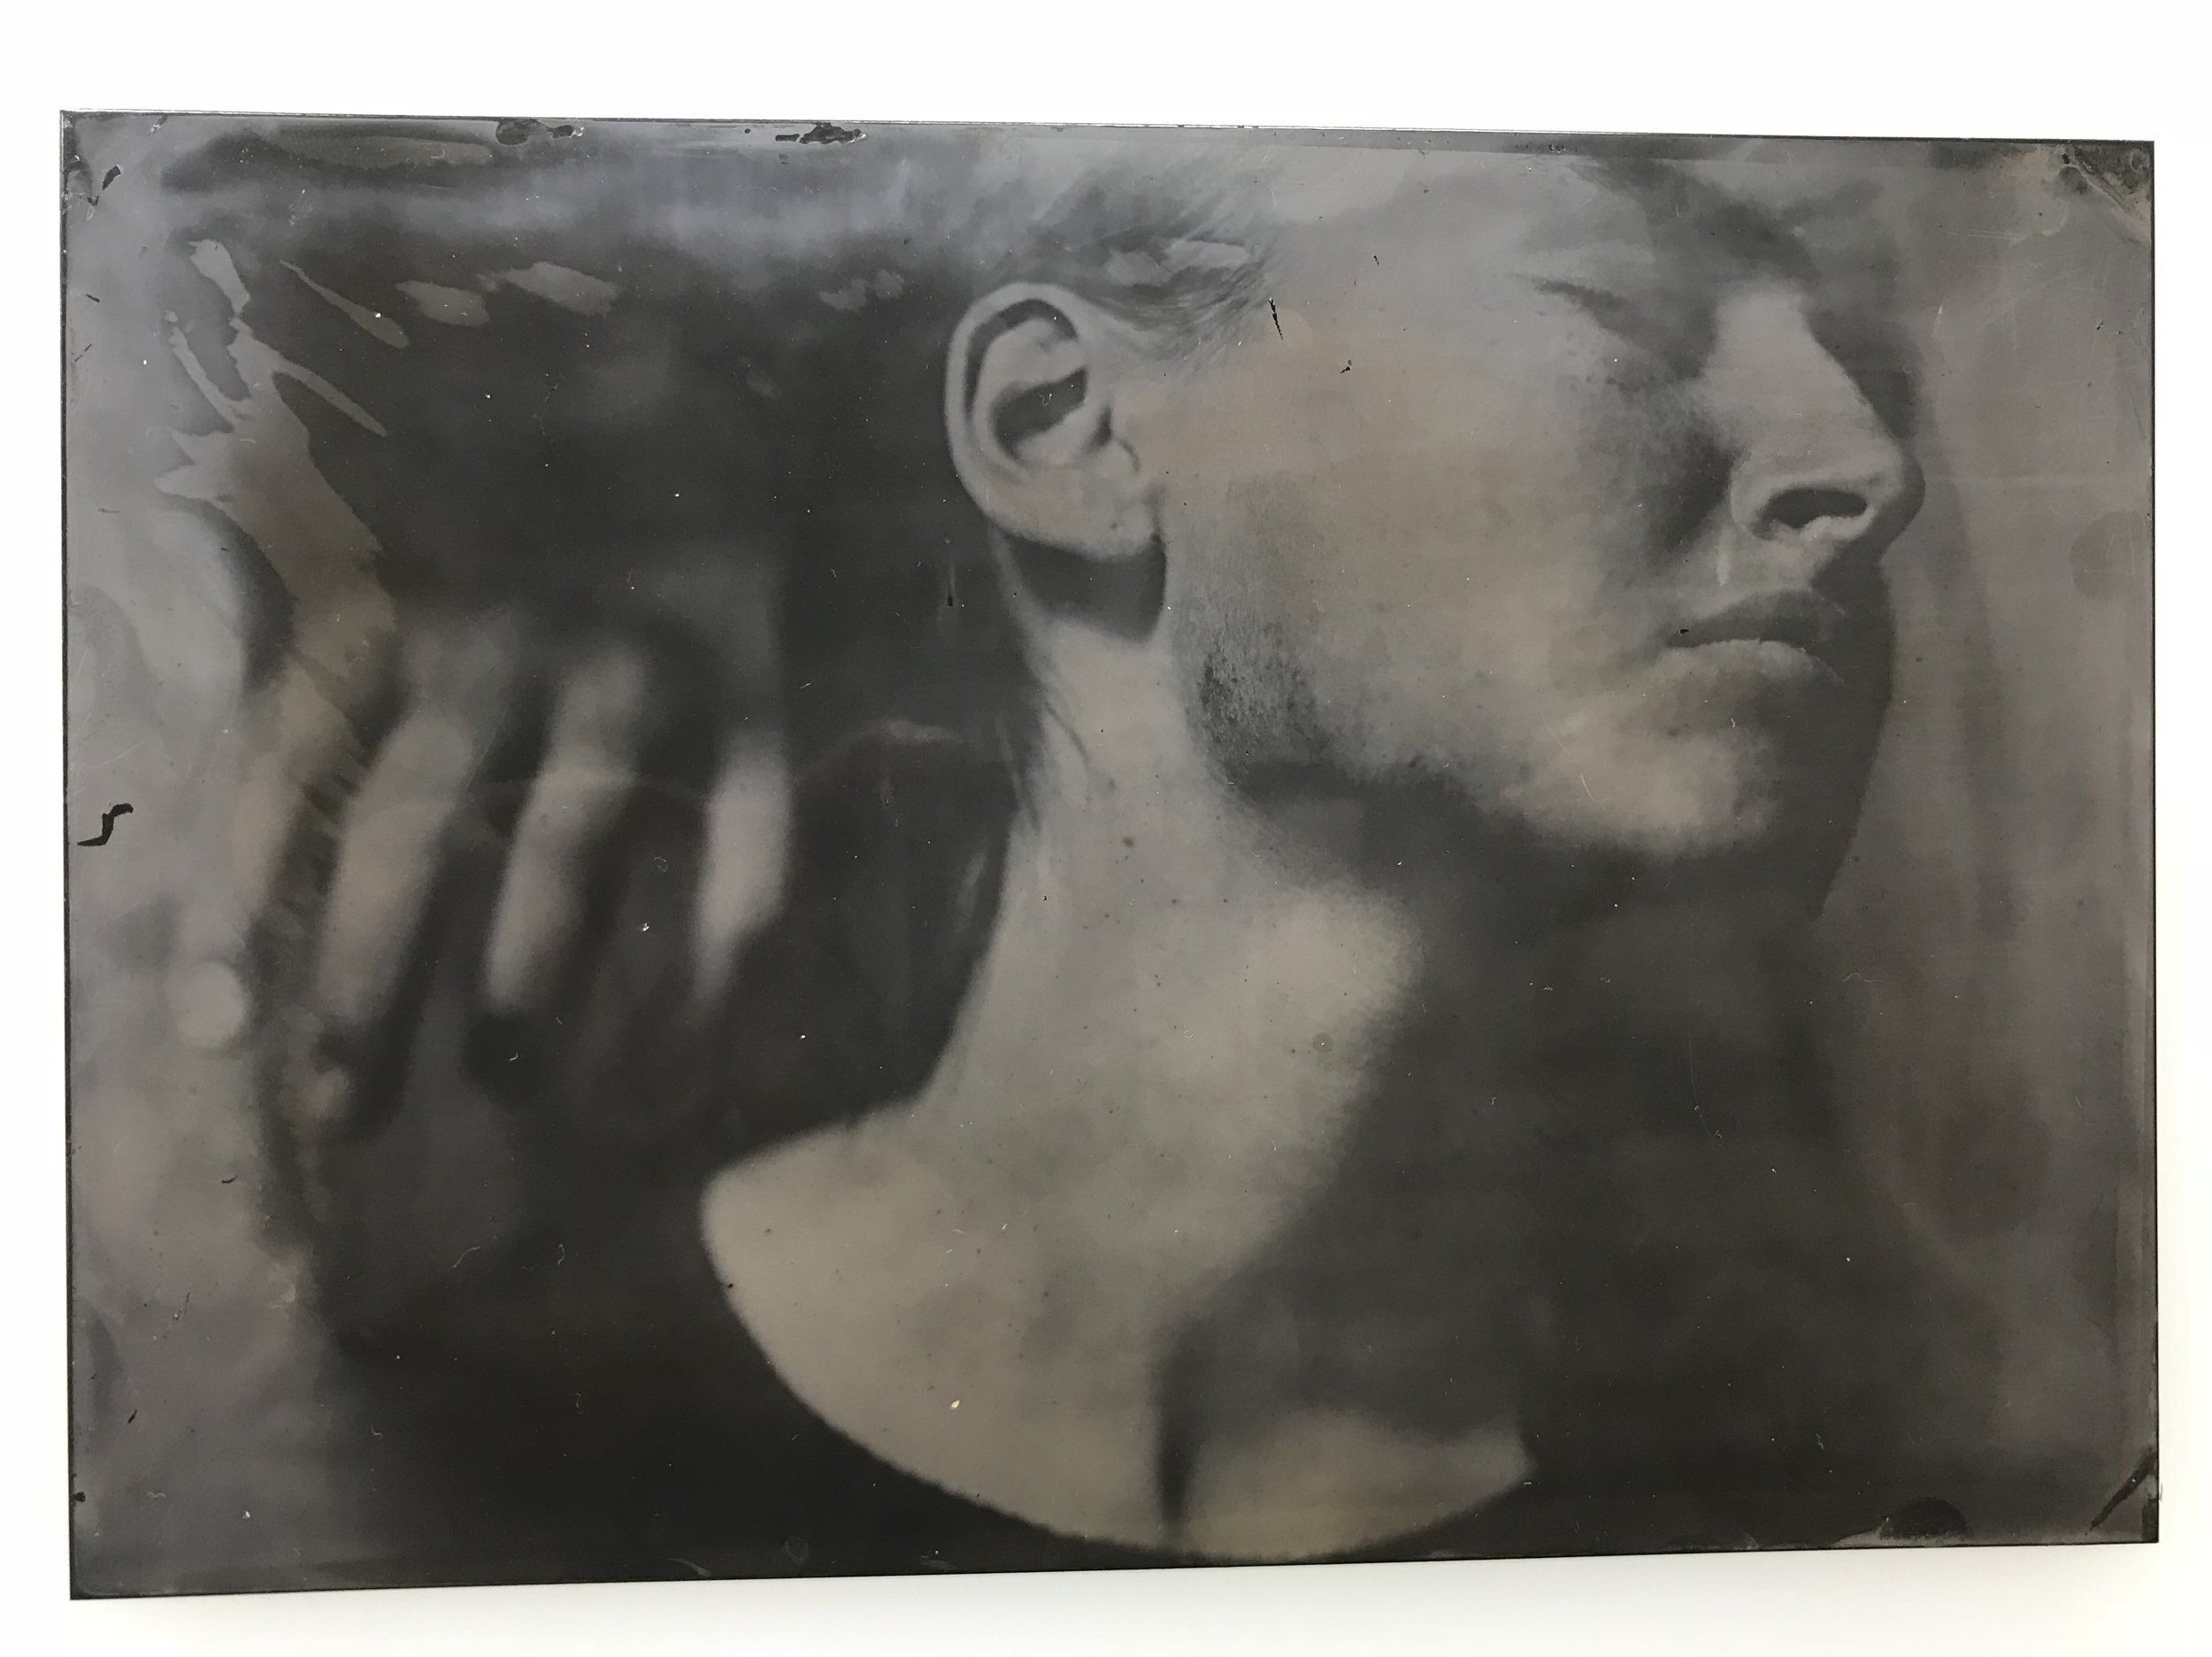 Tintypes and Domestic Violence #2